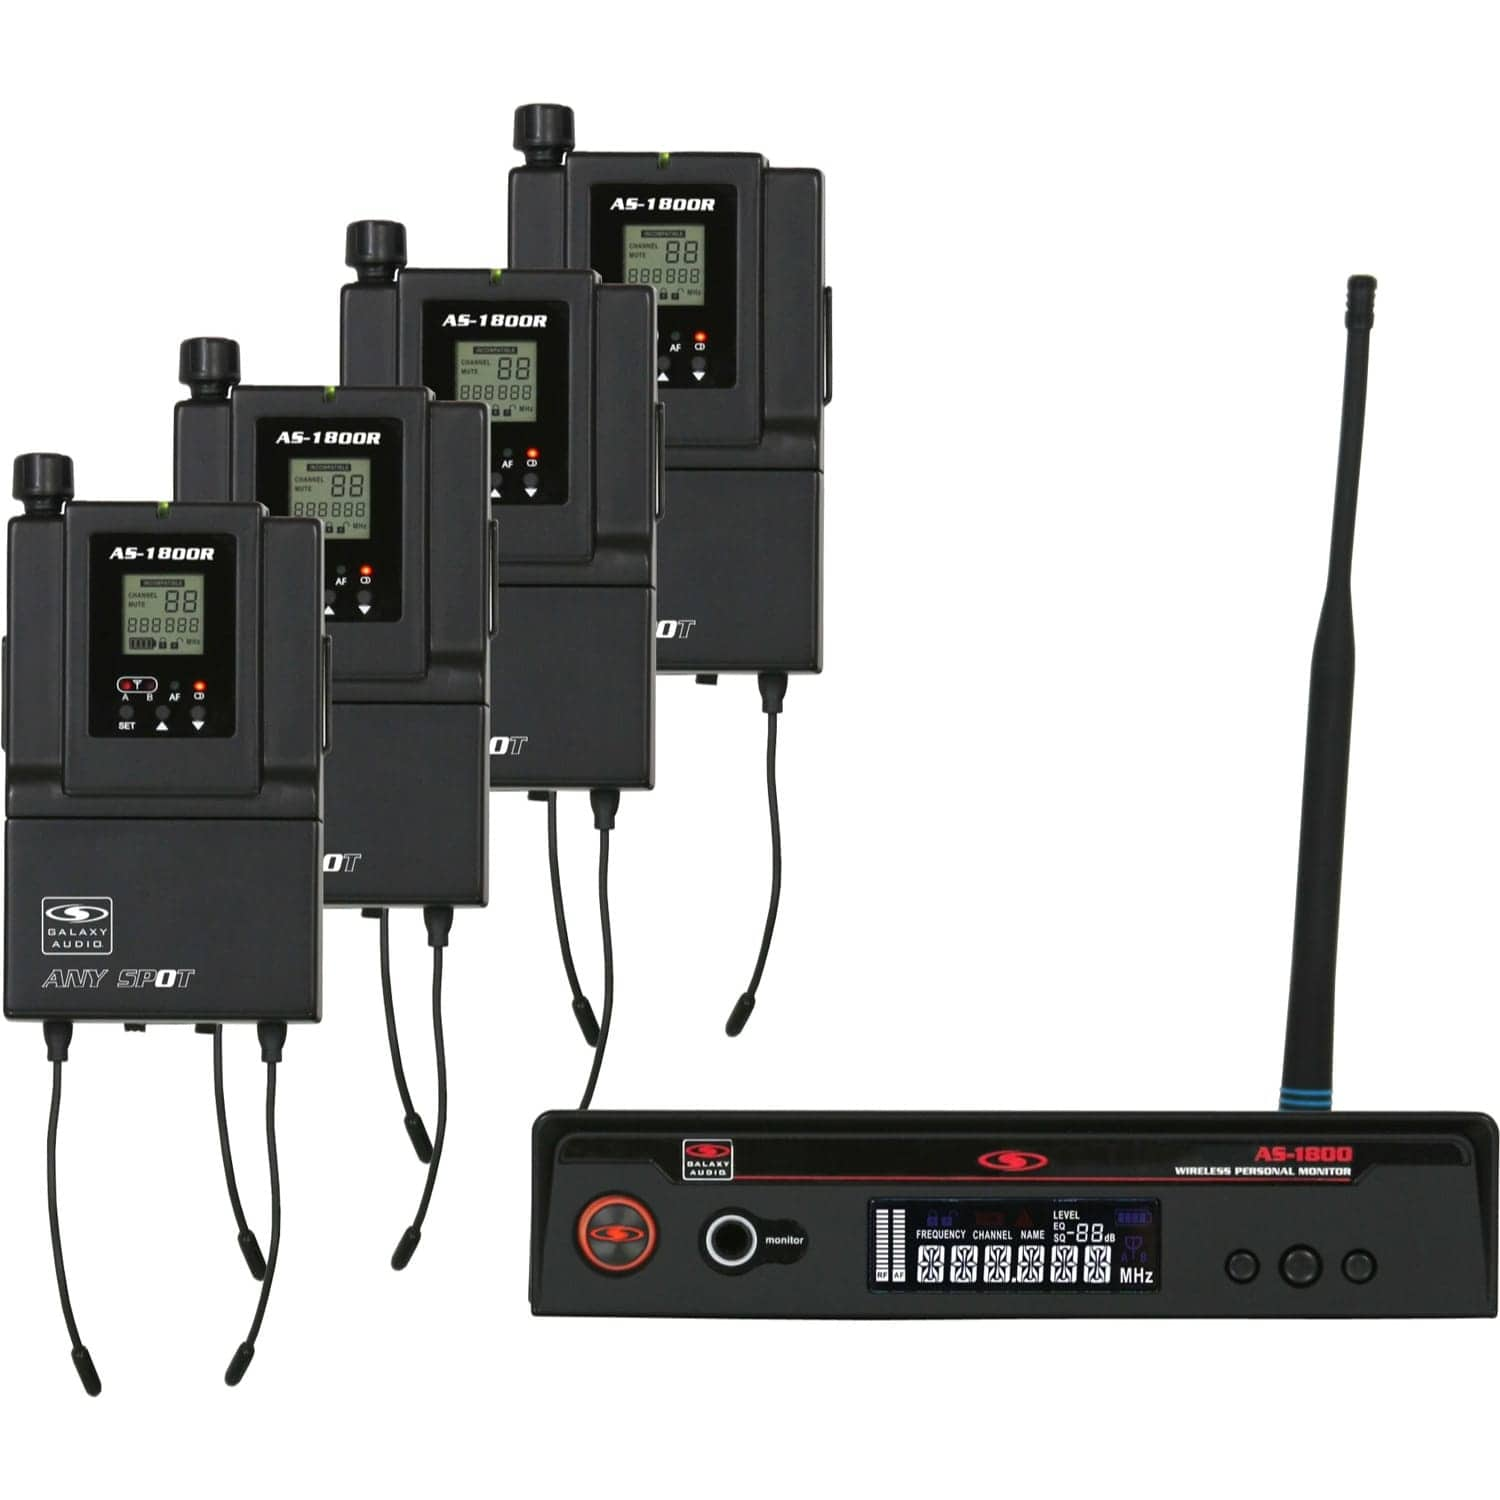 Galaxy Audio AS-1800-4B2 | AS-1800-4 Wireless Personal Monitor Band Pack (538-554 MHz)